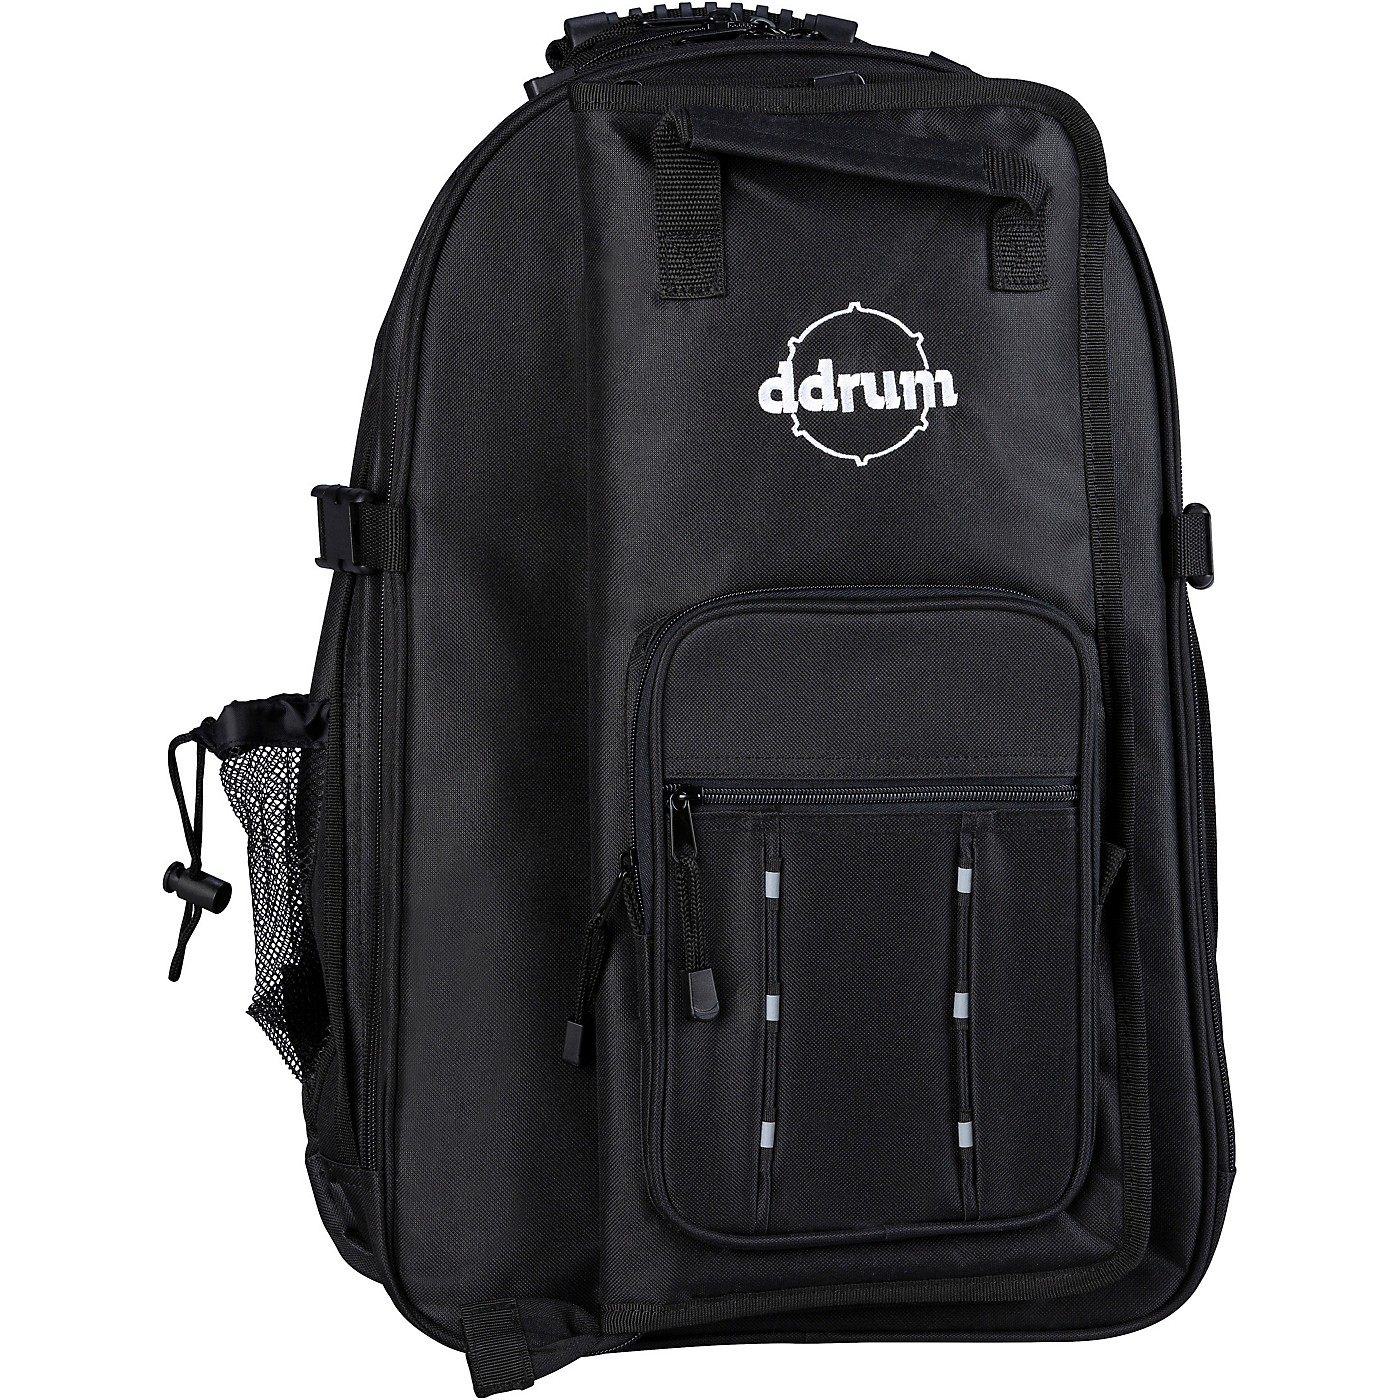 ddrum Backpack with Laptop Compartment and Detachable Stick Bag thumbnail